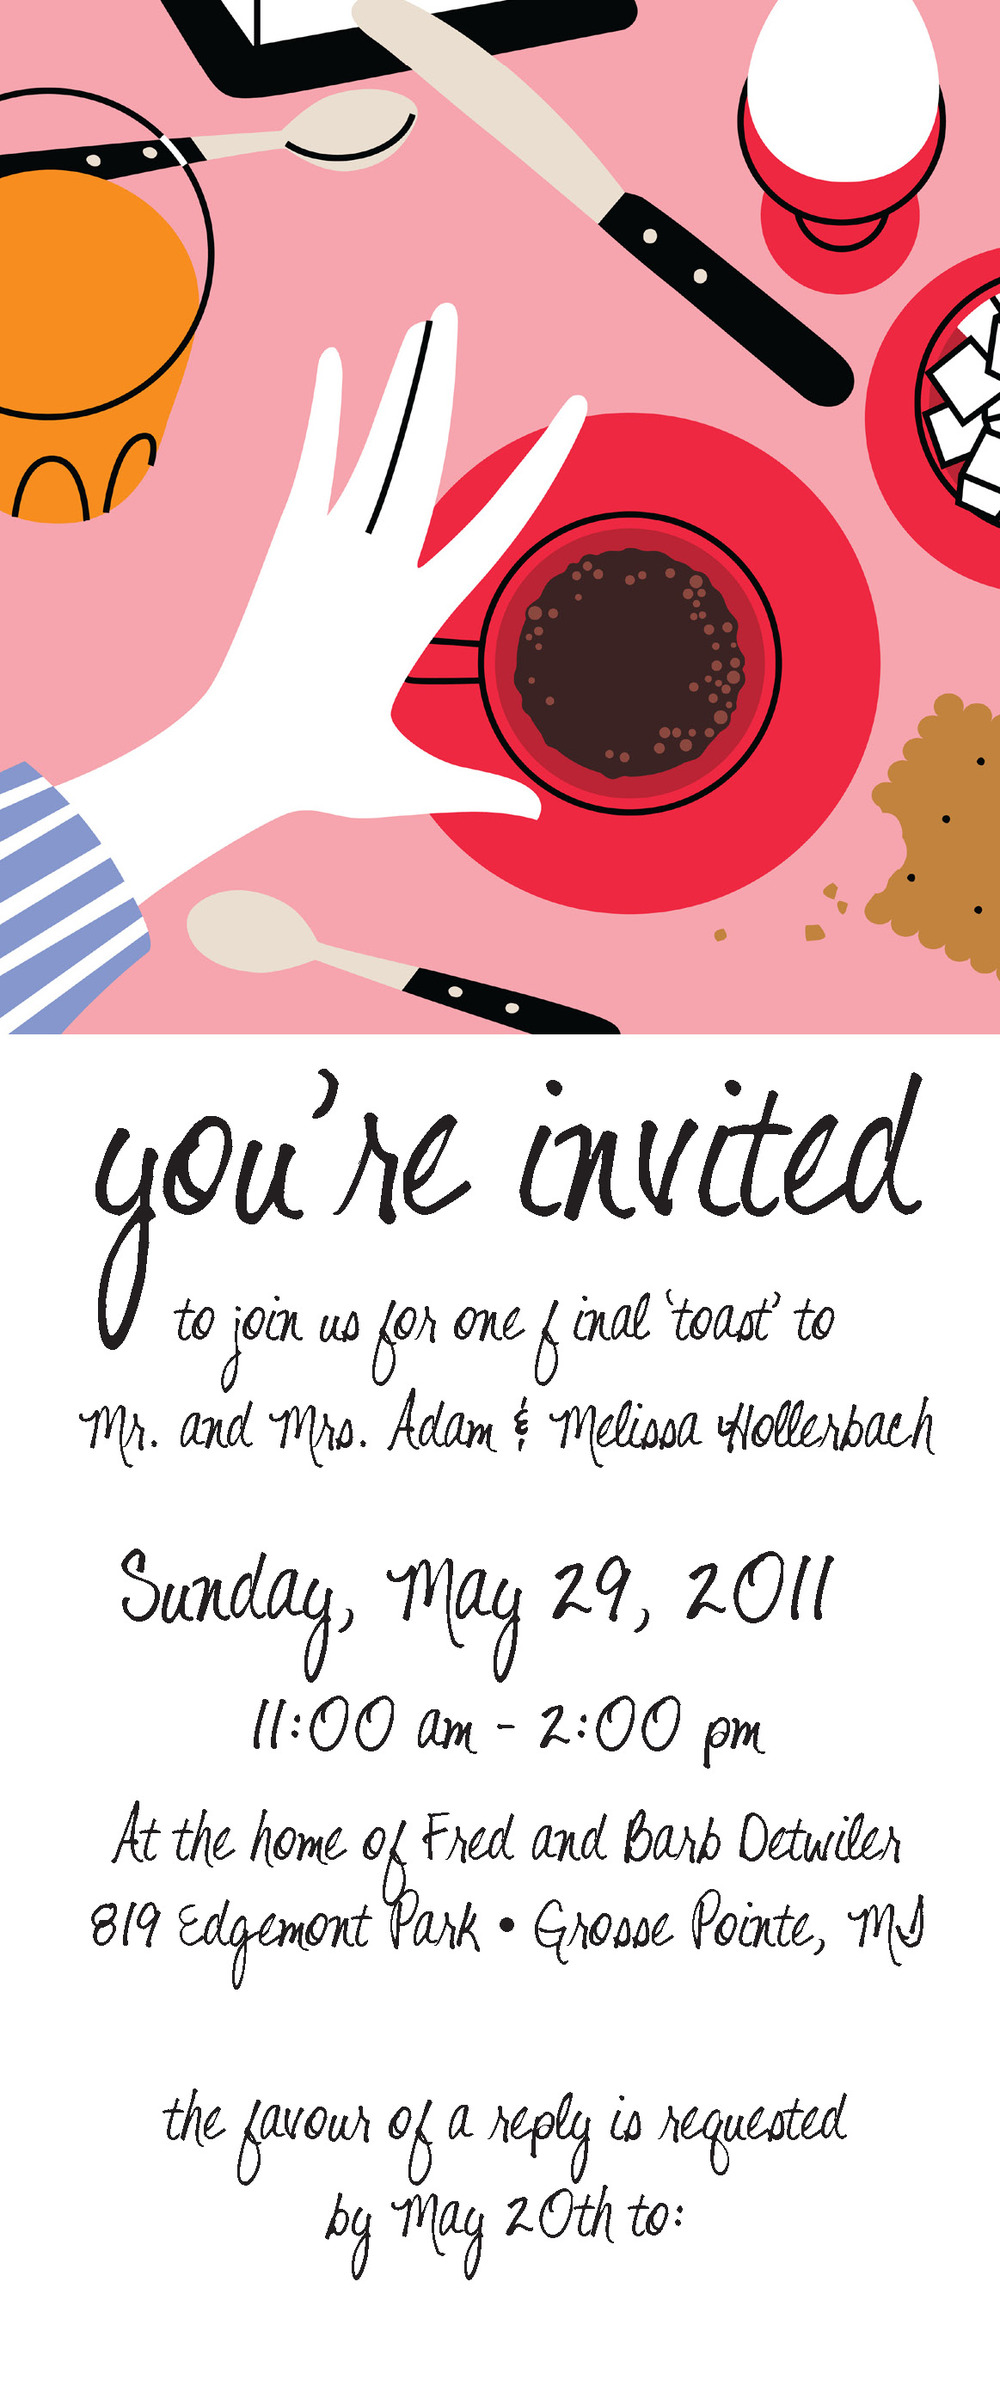 LeFevre-Hollerbach Brunch invitation1.jpg